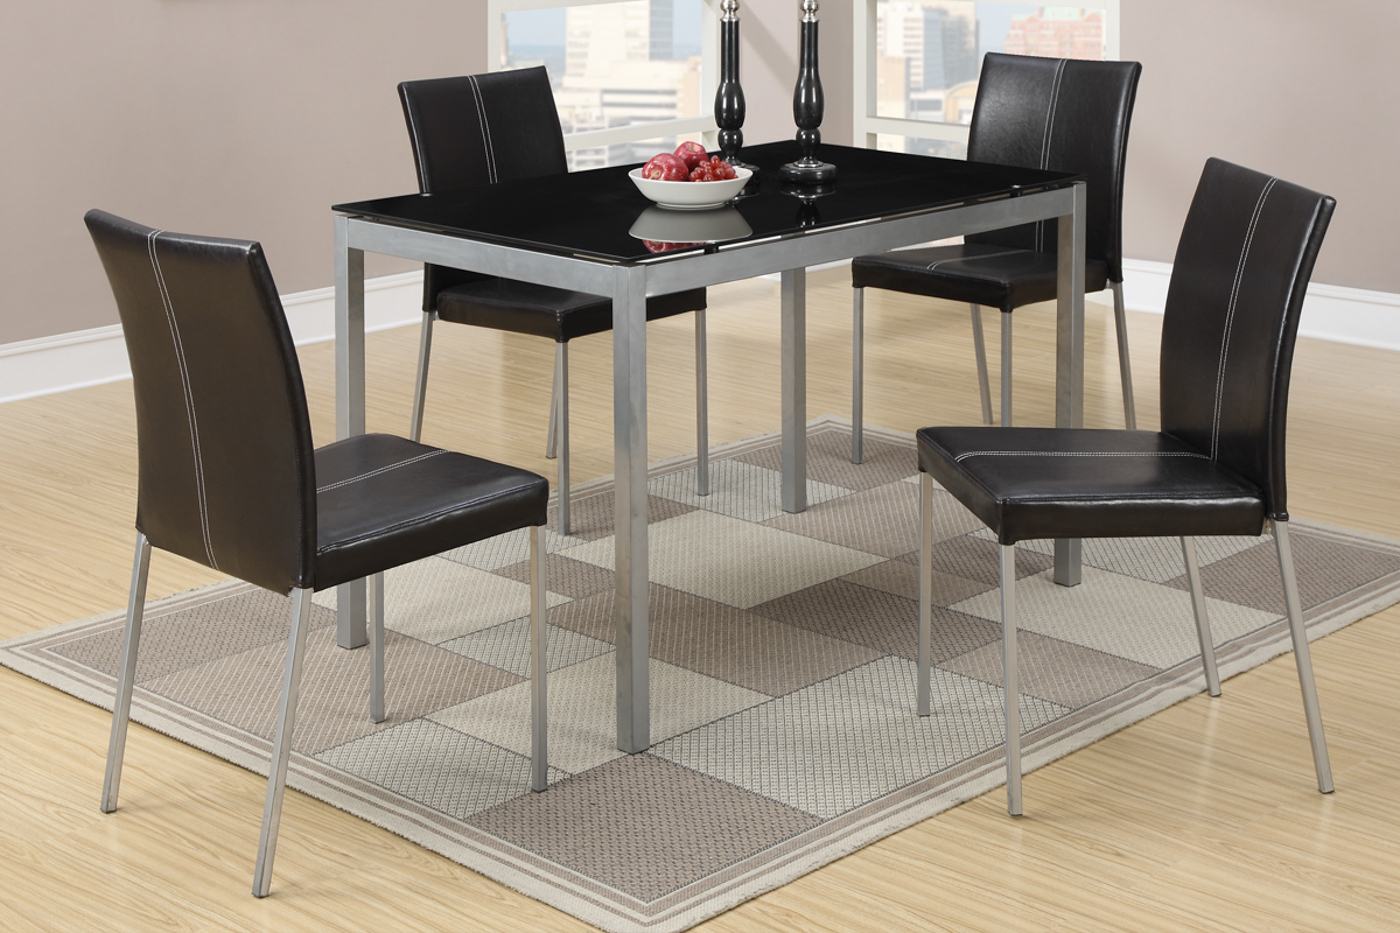 Poundex F2363 Silver Metal Dining Table and Chair Set Steal A